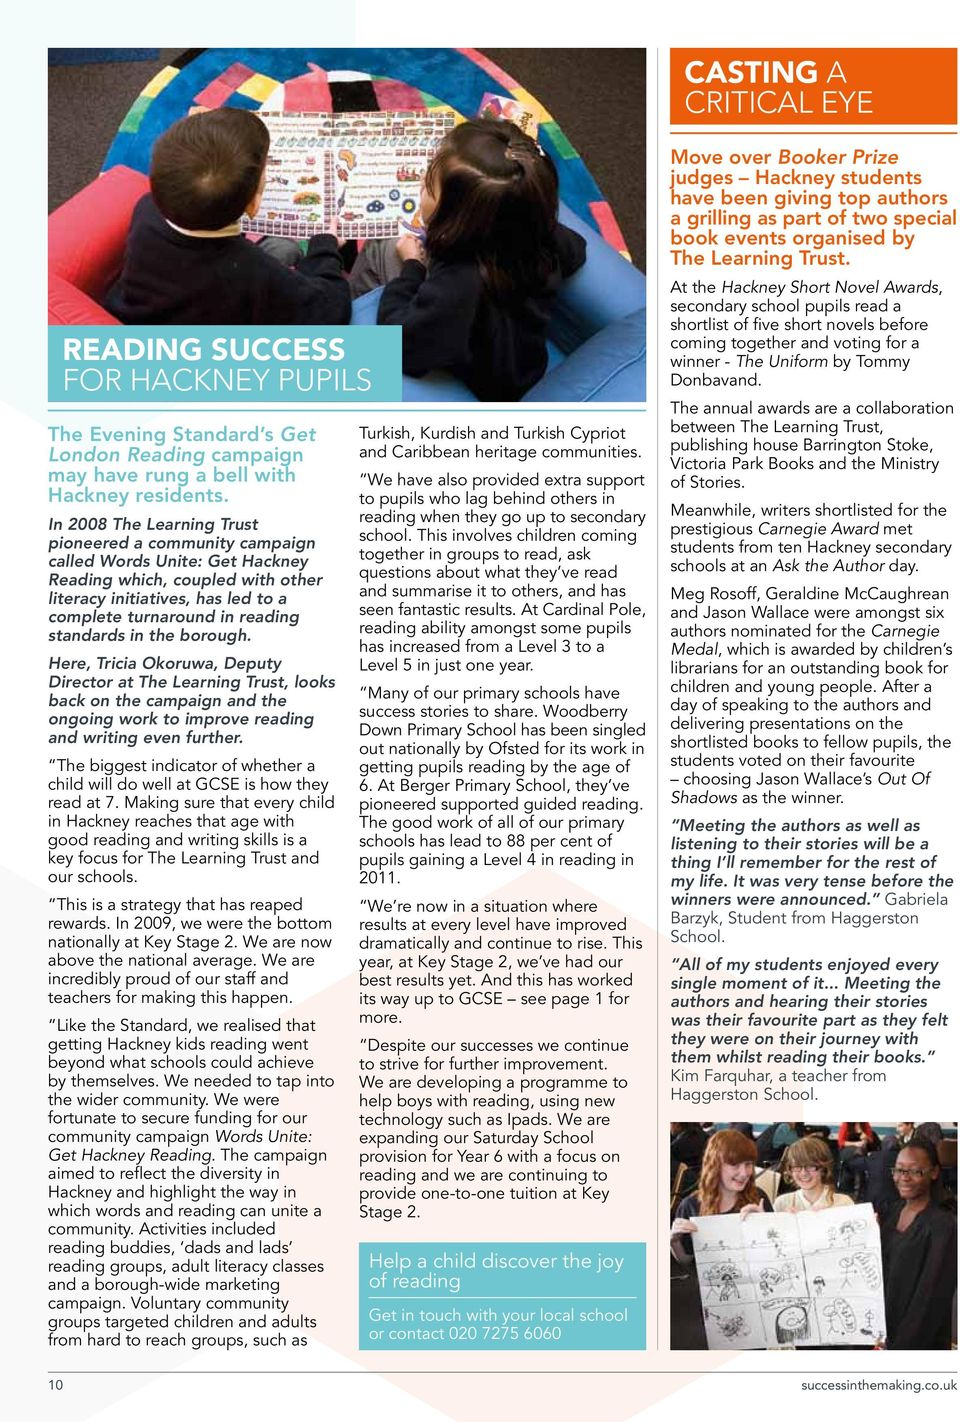 in the borough. Here, Tricia Okoruwa, Deputy Director at The Learning Trust, looks back on the campaign and the ongoing work to improve reading and writing even further.